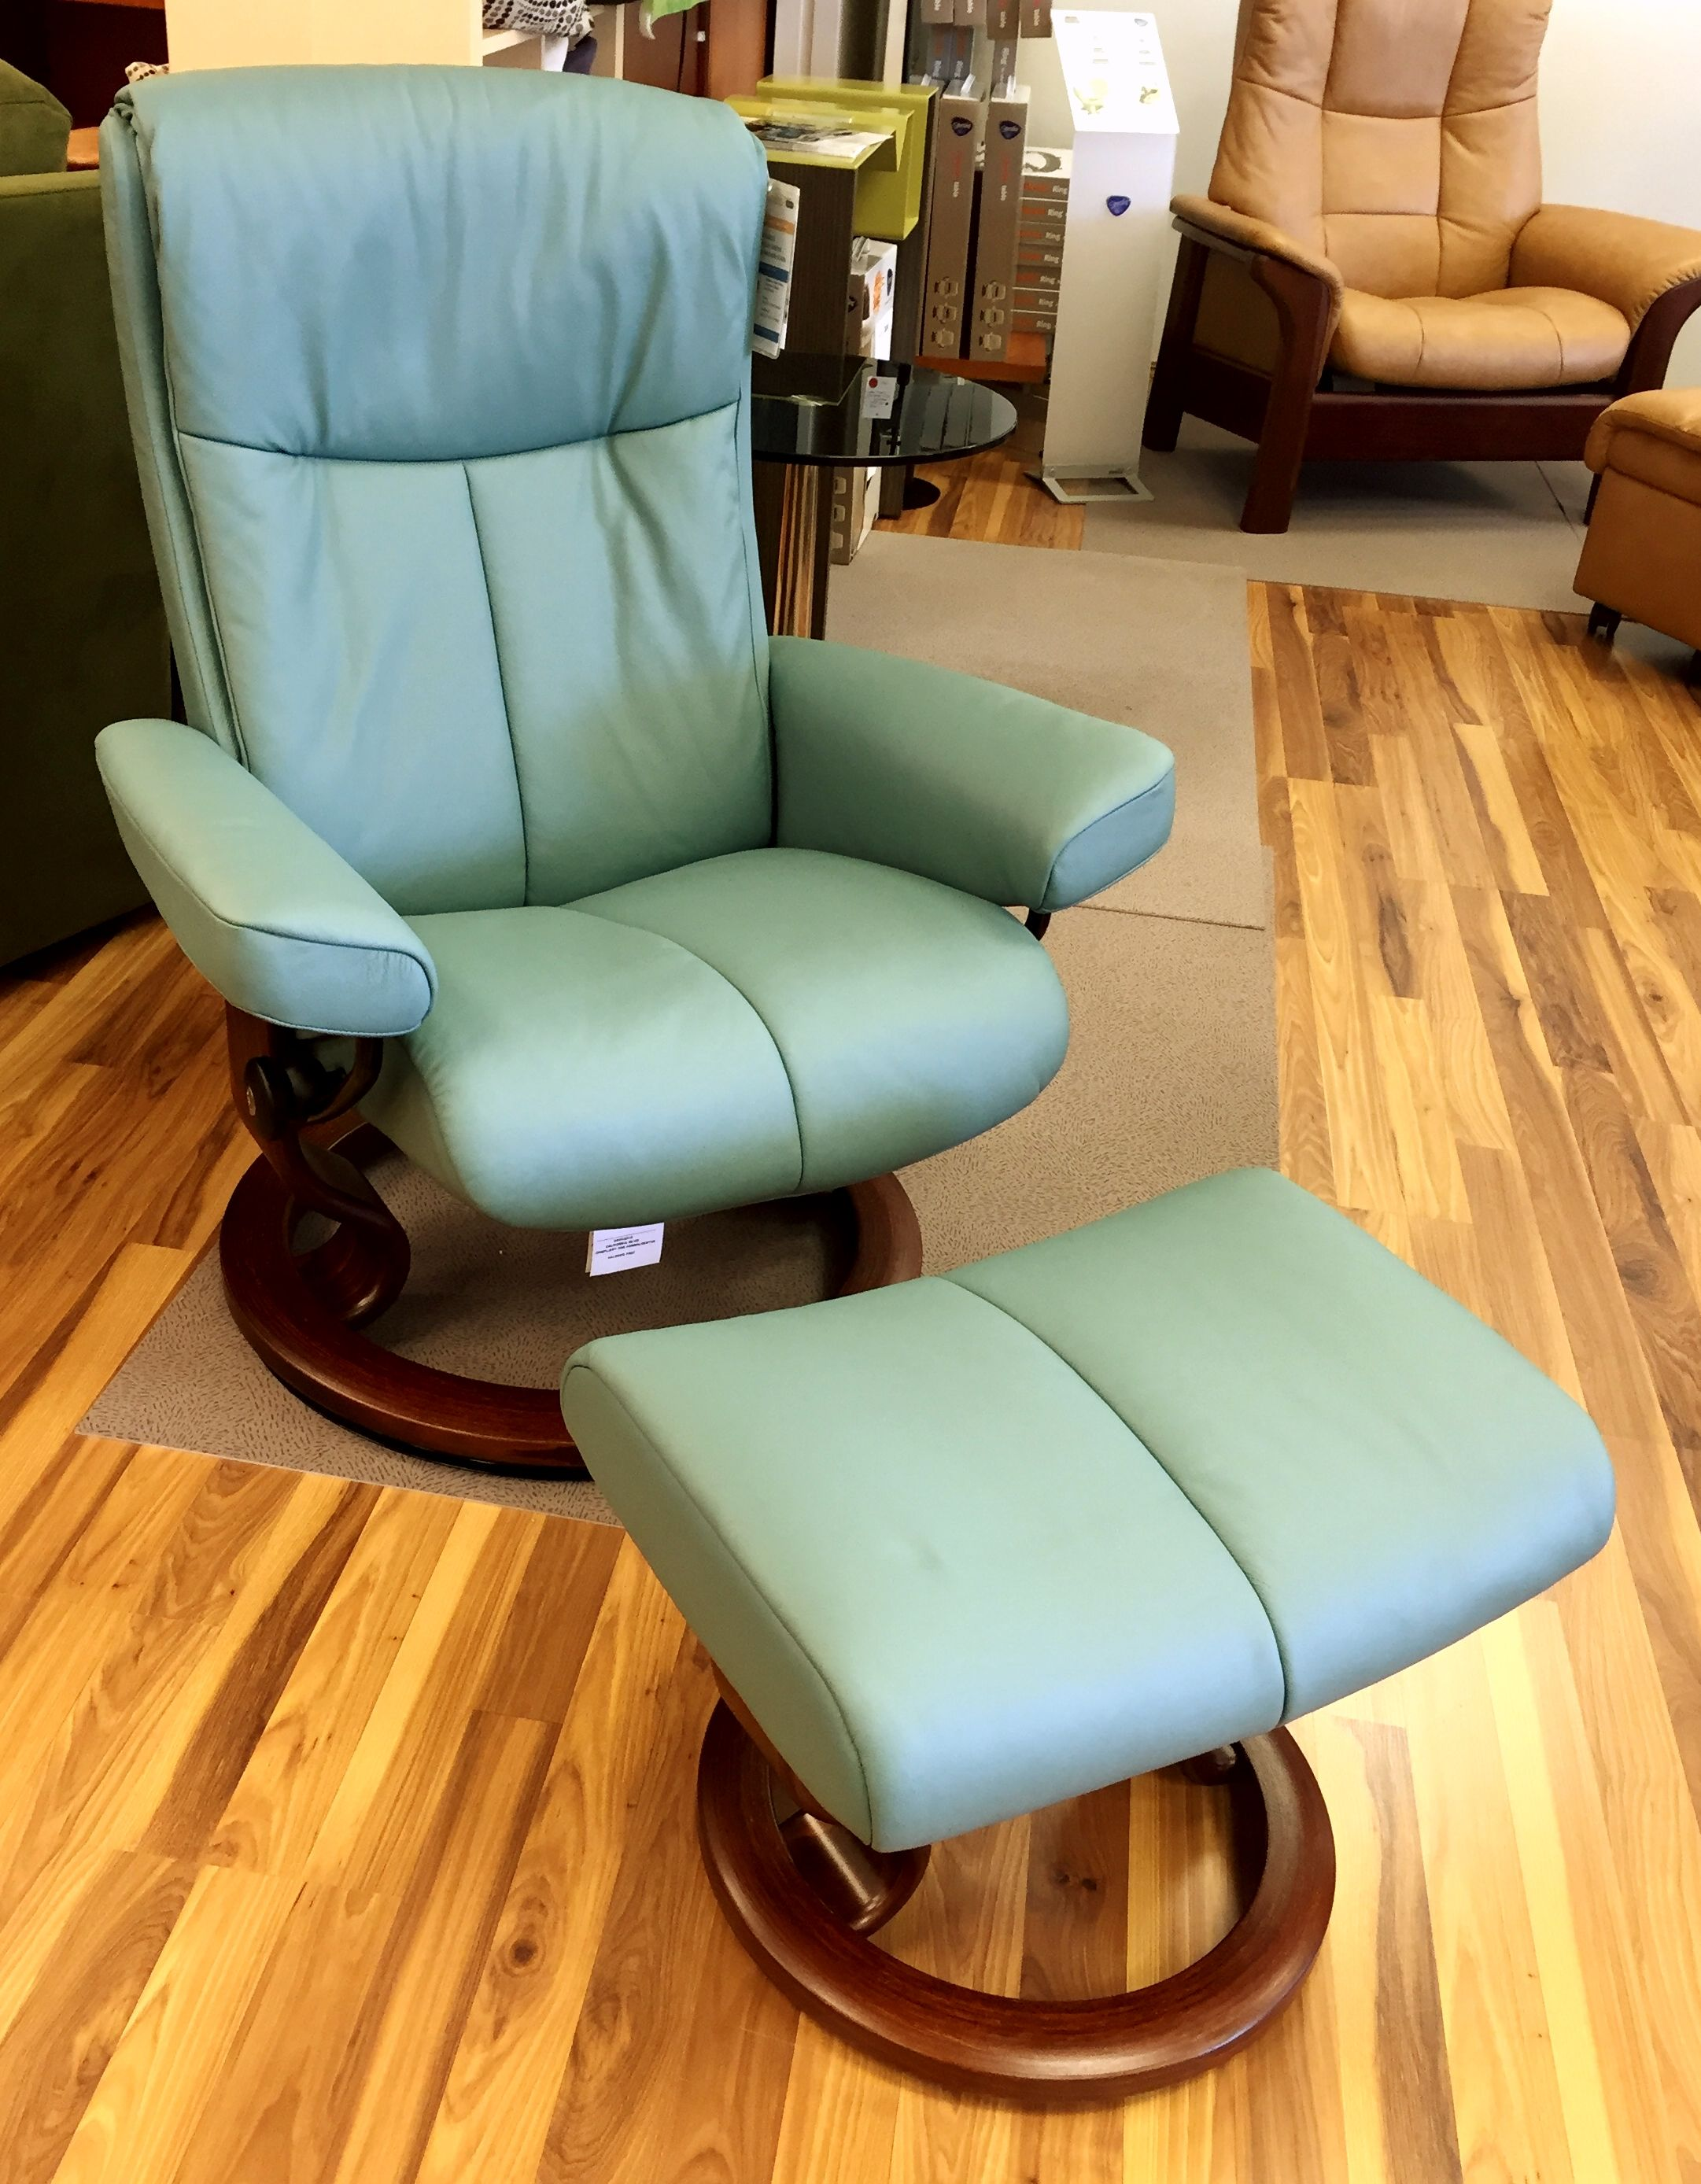 Stressless Sofa Ottoman Ekornes Stressless Peace Recliner And Ottoman In Paloma Aqua